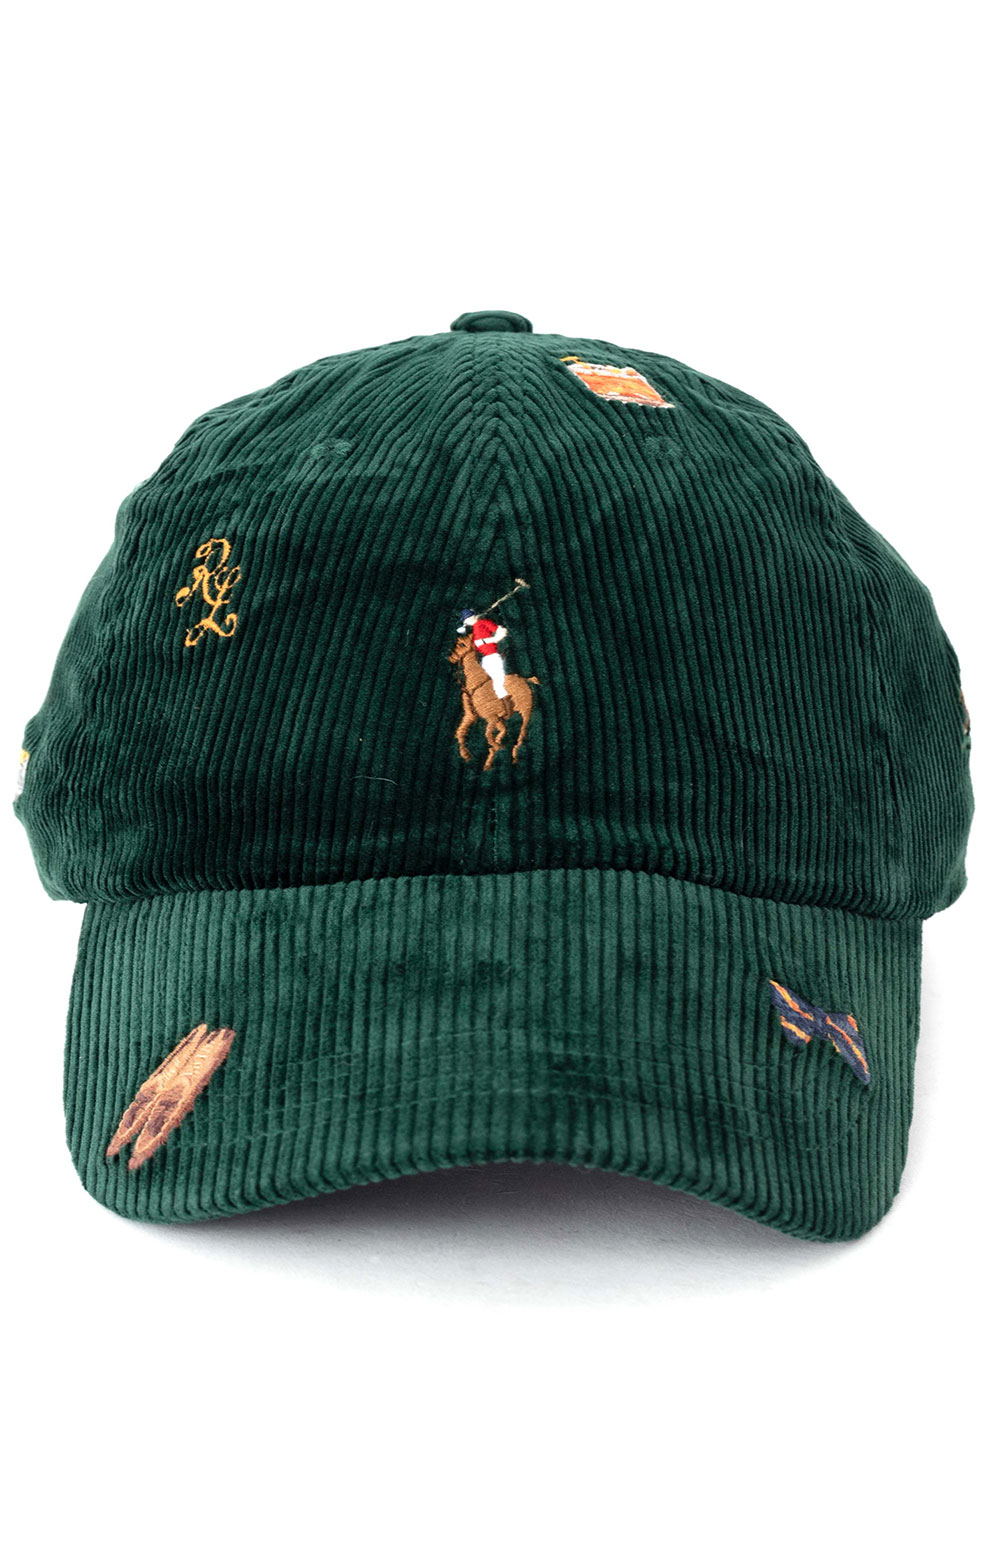 Corduroy Classic Sports Cap - Green  2